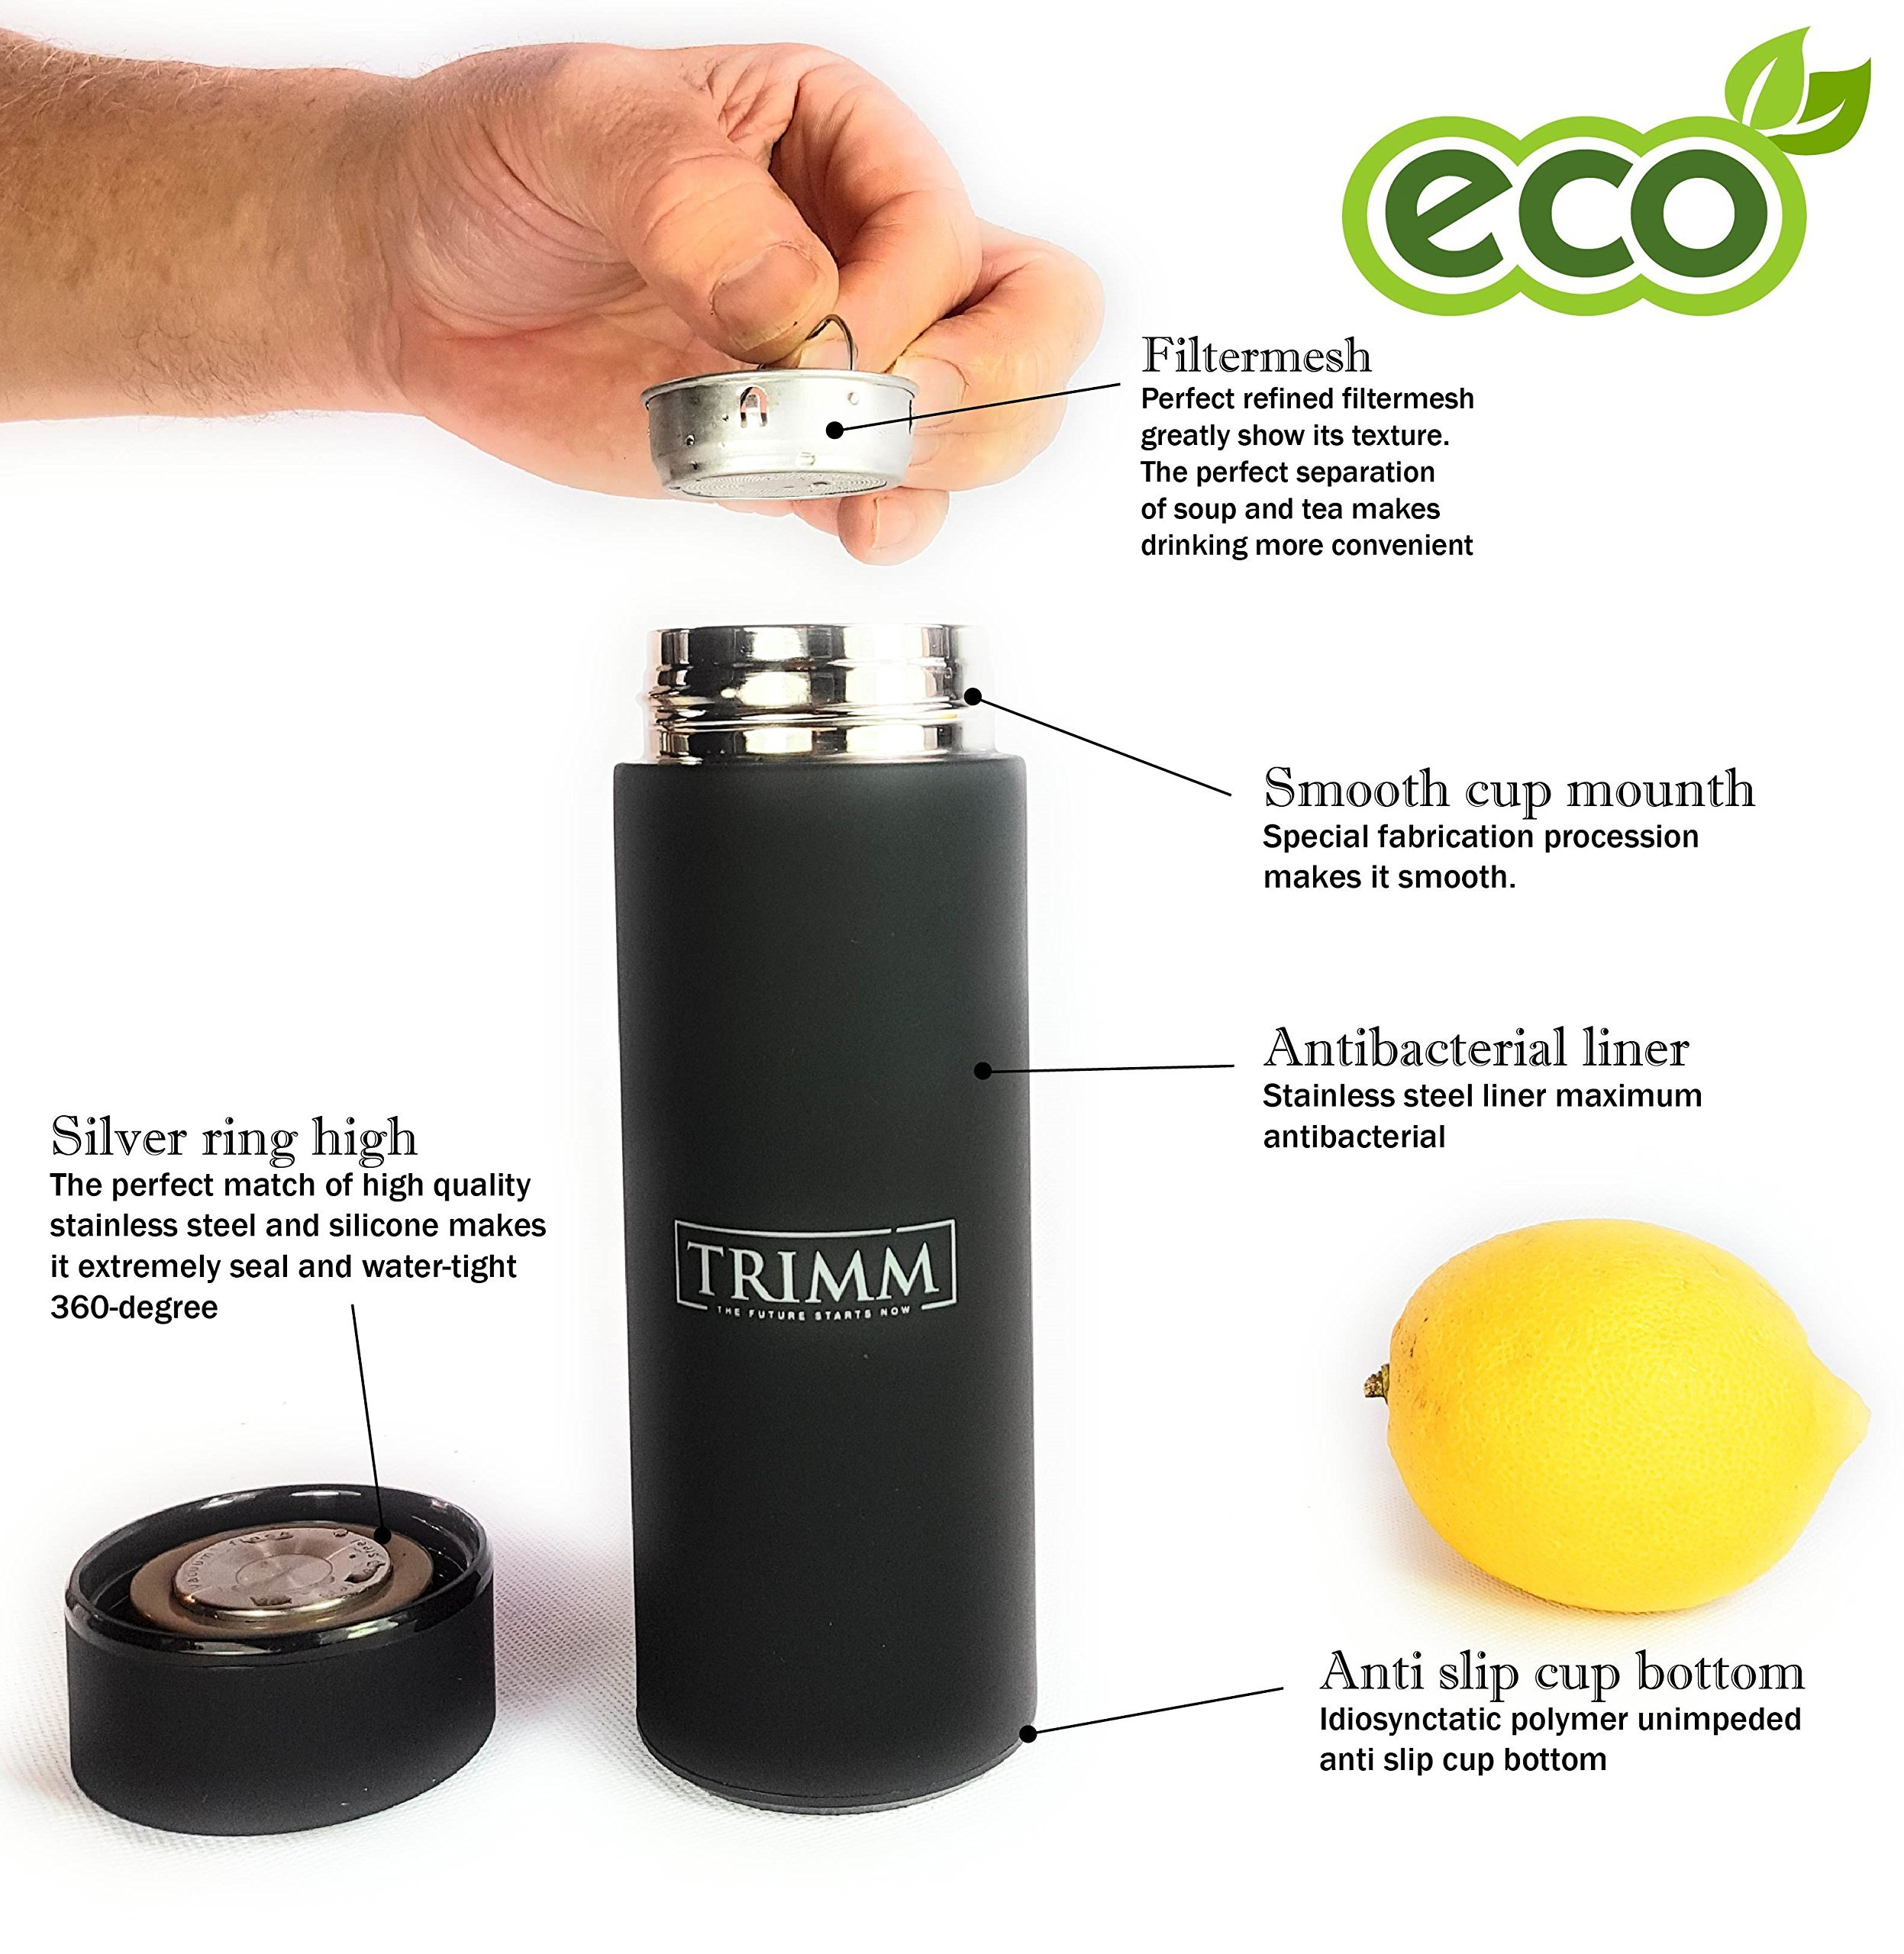 Trimm Portable Hand Held Espresso Machine and Thermos Vacuum Insulated Double Wall | Portable Espresso Maker and Flask | Single Cup Coffee Maker and Tea Thermos Bottle | Travel Set Great Gift Idea by TRIMM THE FUTURE STARTS NOW (Image #5)